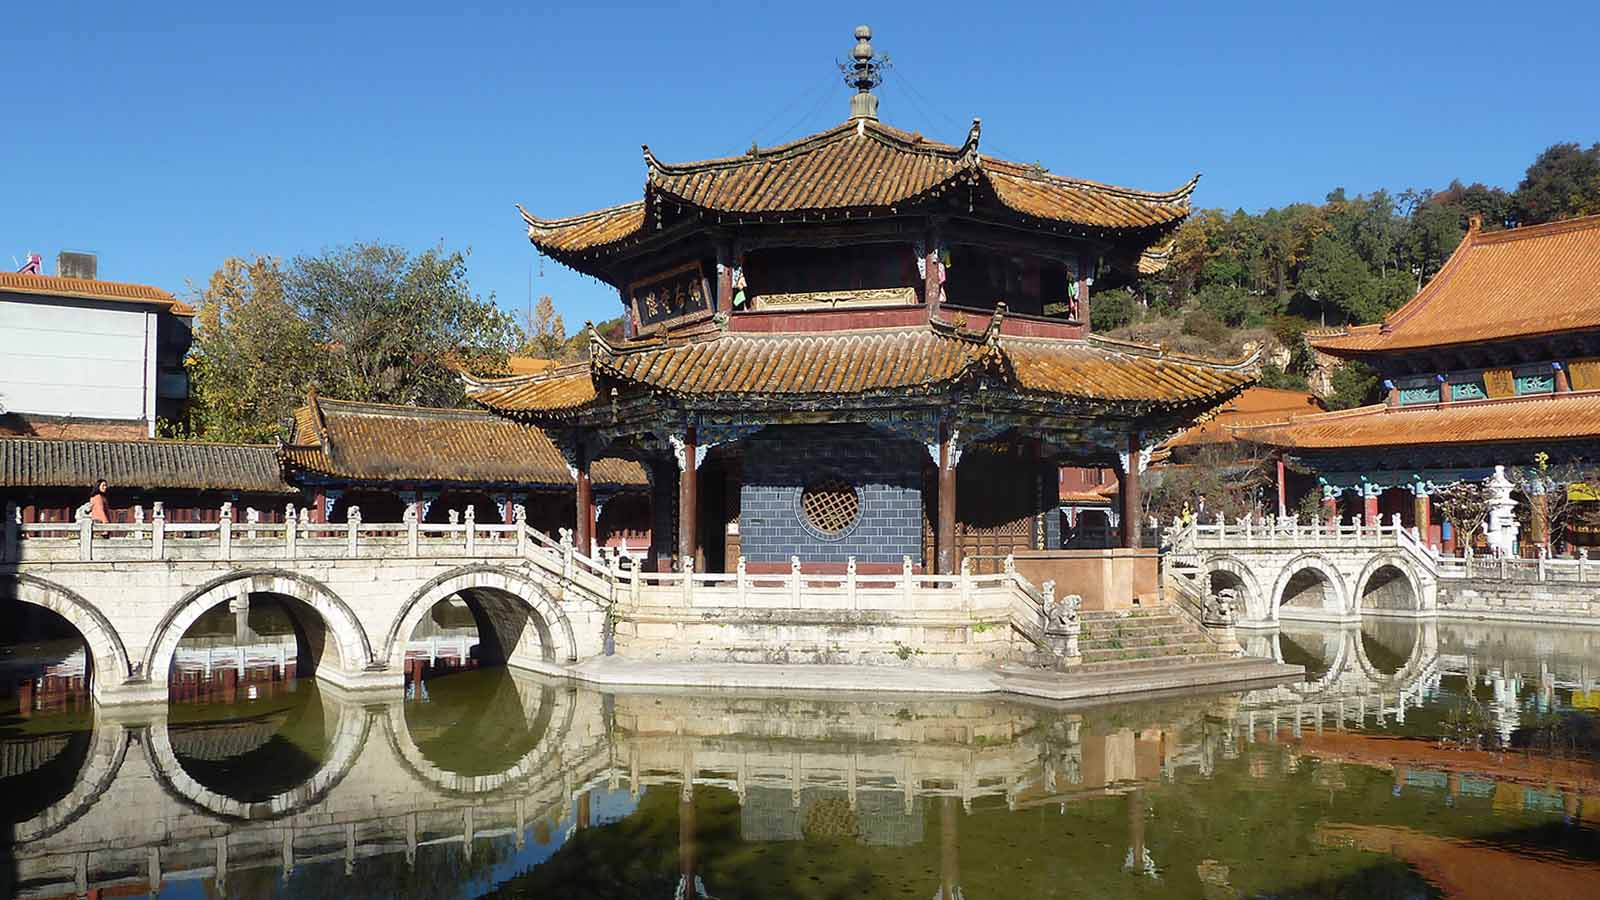 Yuantong Buddhist Temple in Kunming, China.